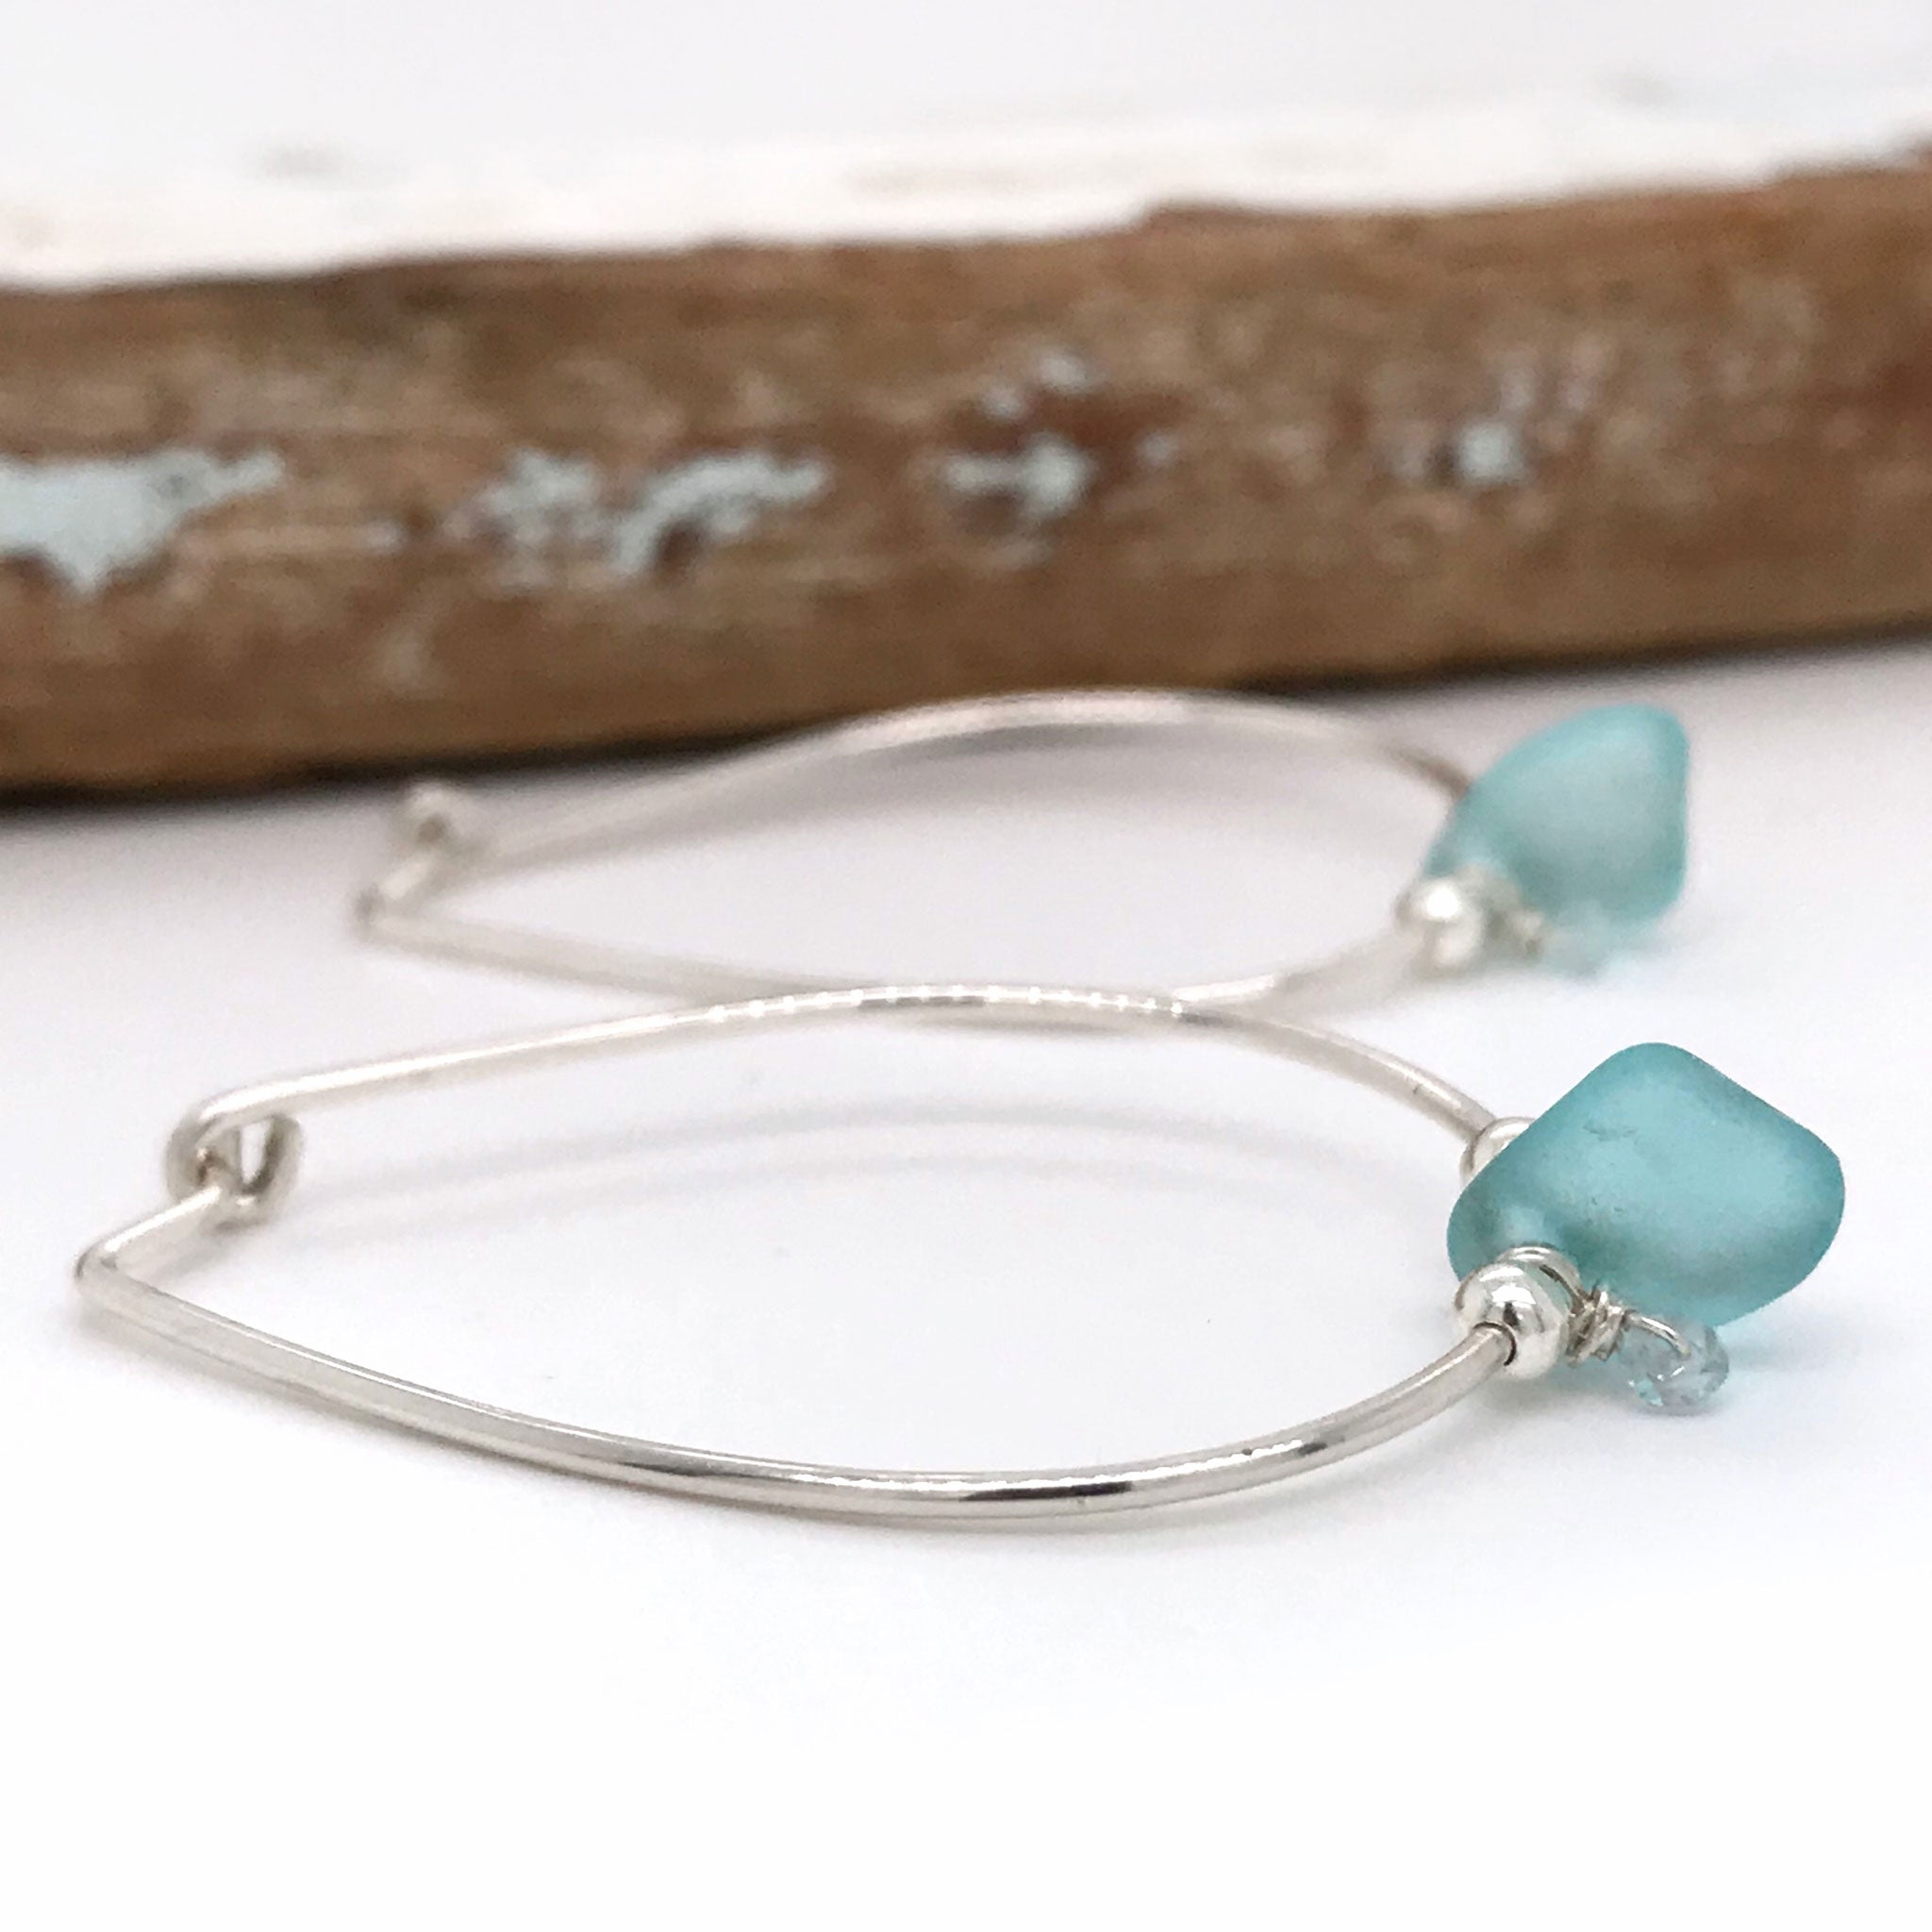 aqua blue seaglass hoop earrings sterling silver Kriket Broadhurst jewellery